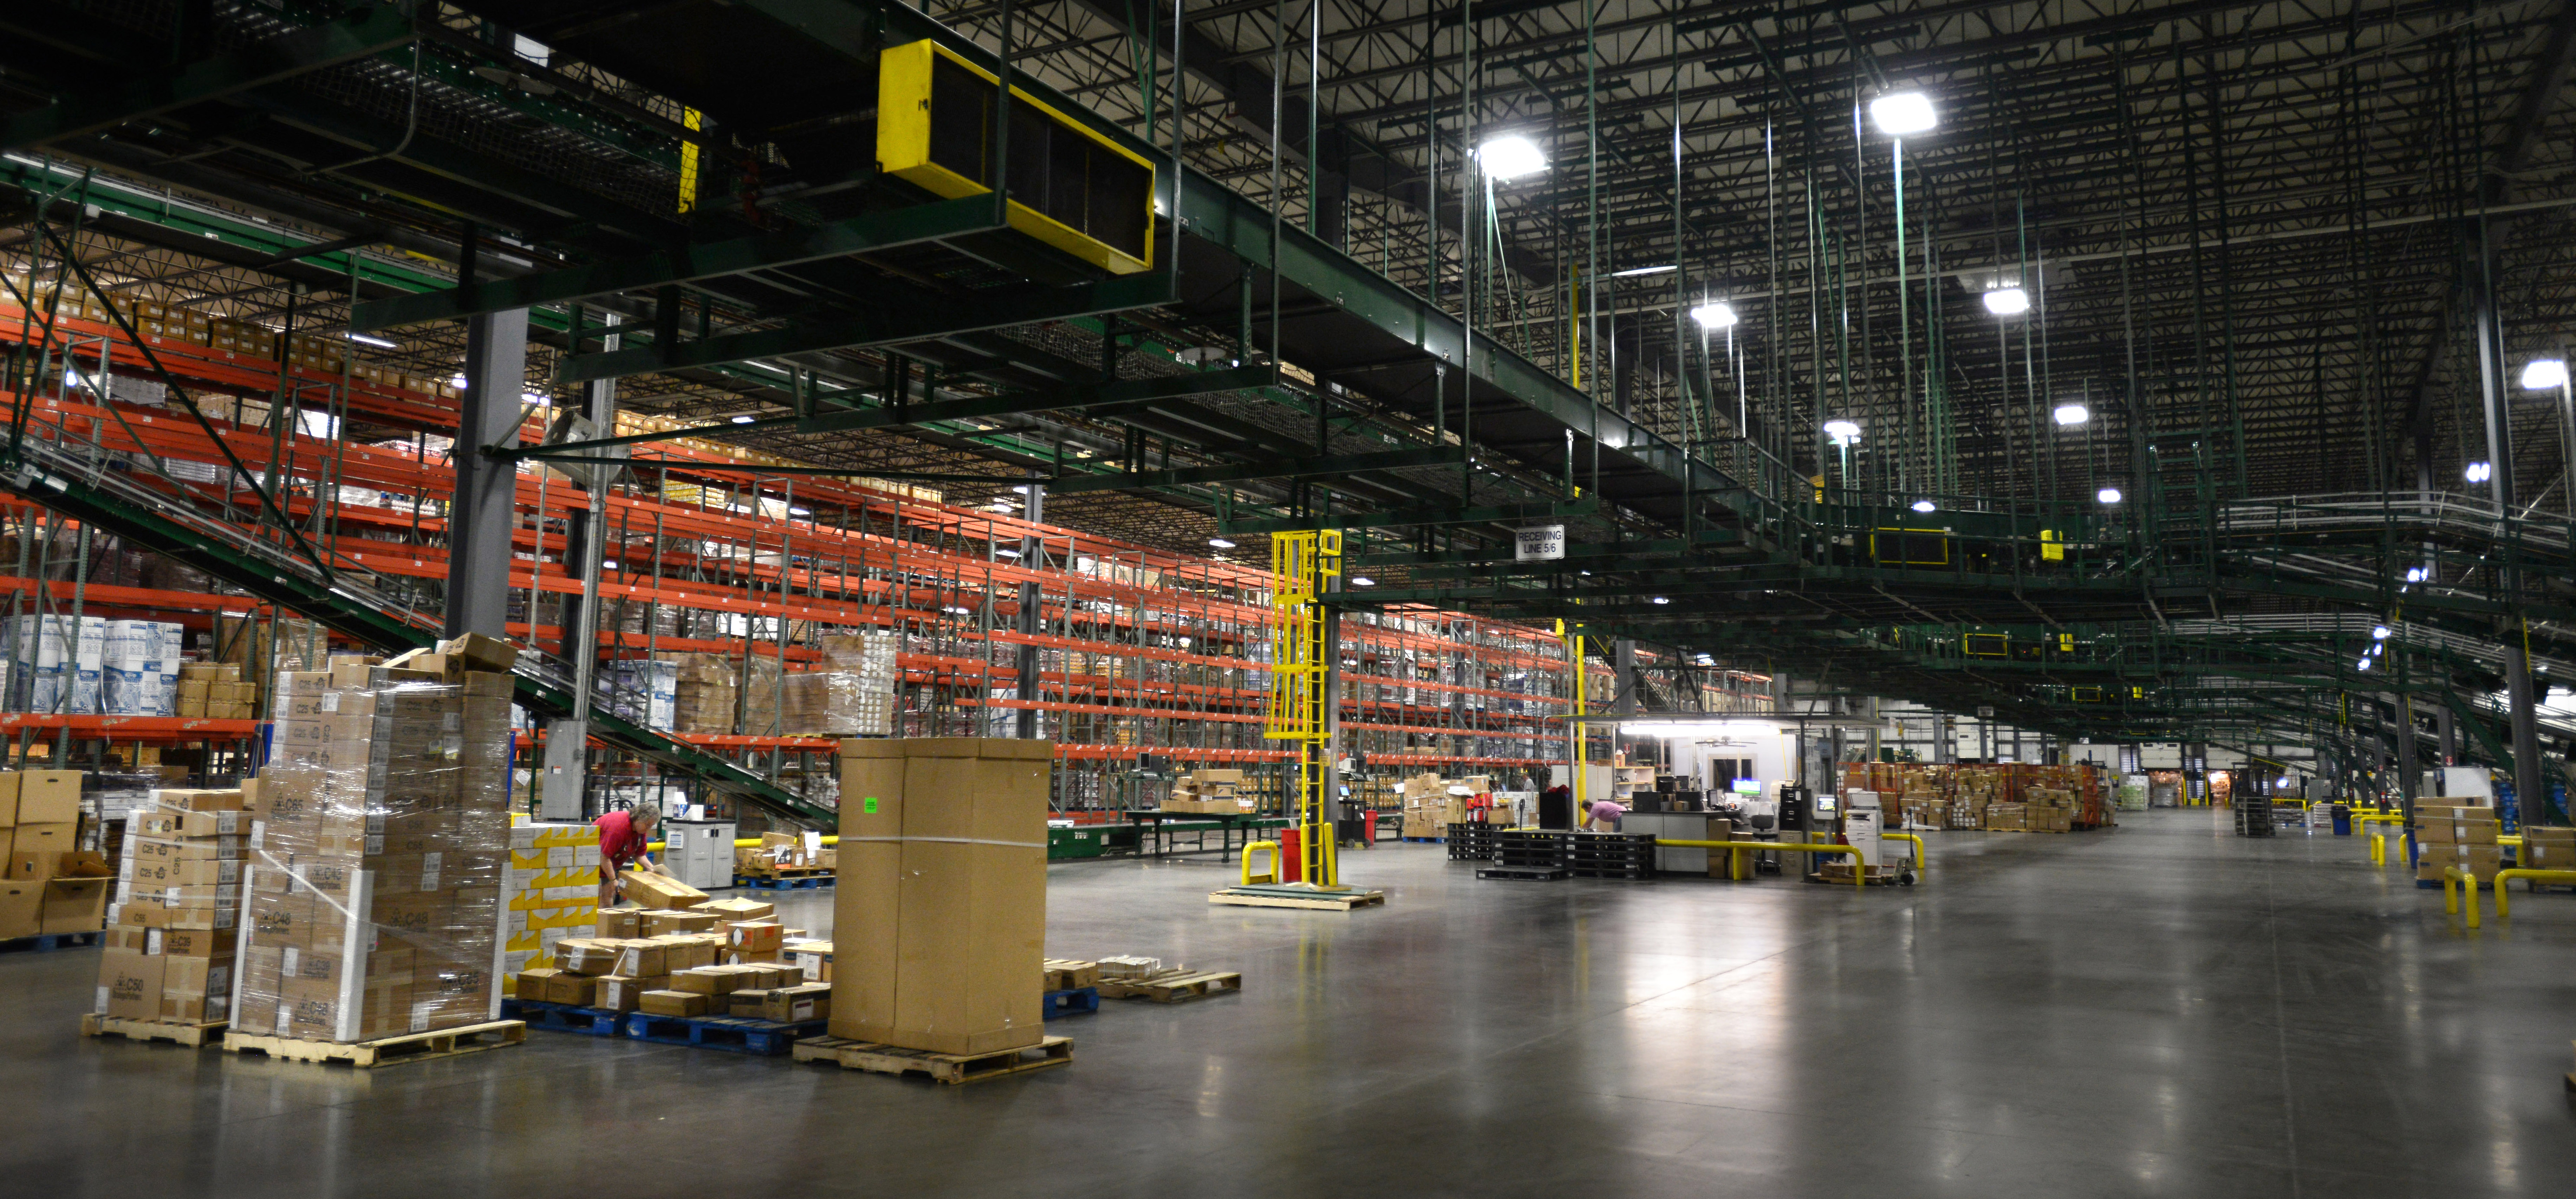 walmart logistics D o n o t c o p y wal-mart's supply chain management practices 3 background note walton was born in 1918 at kingfisher, oklahoma, us after graduating from the university of.